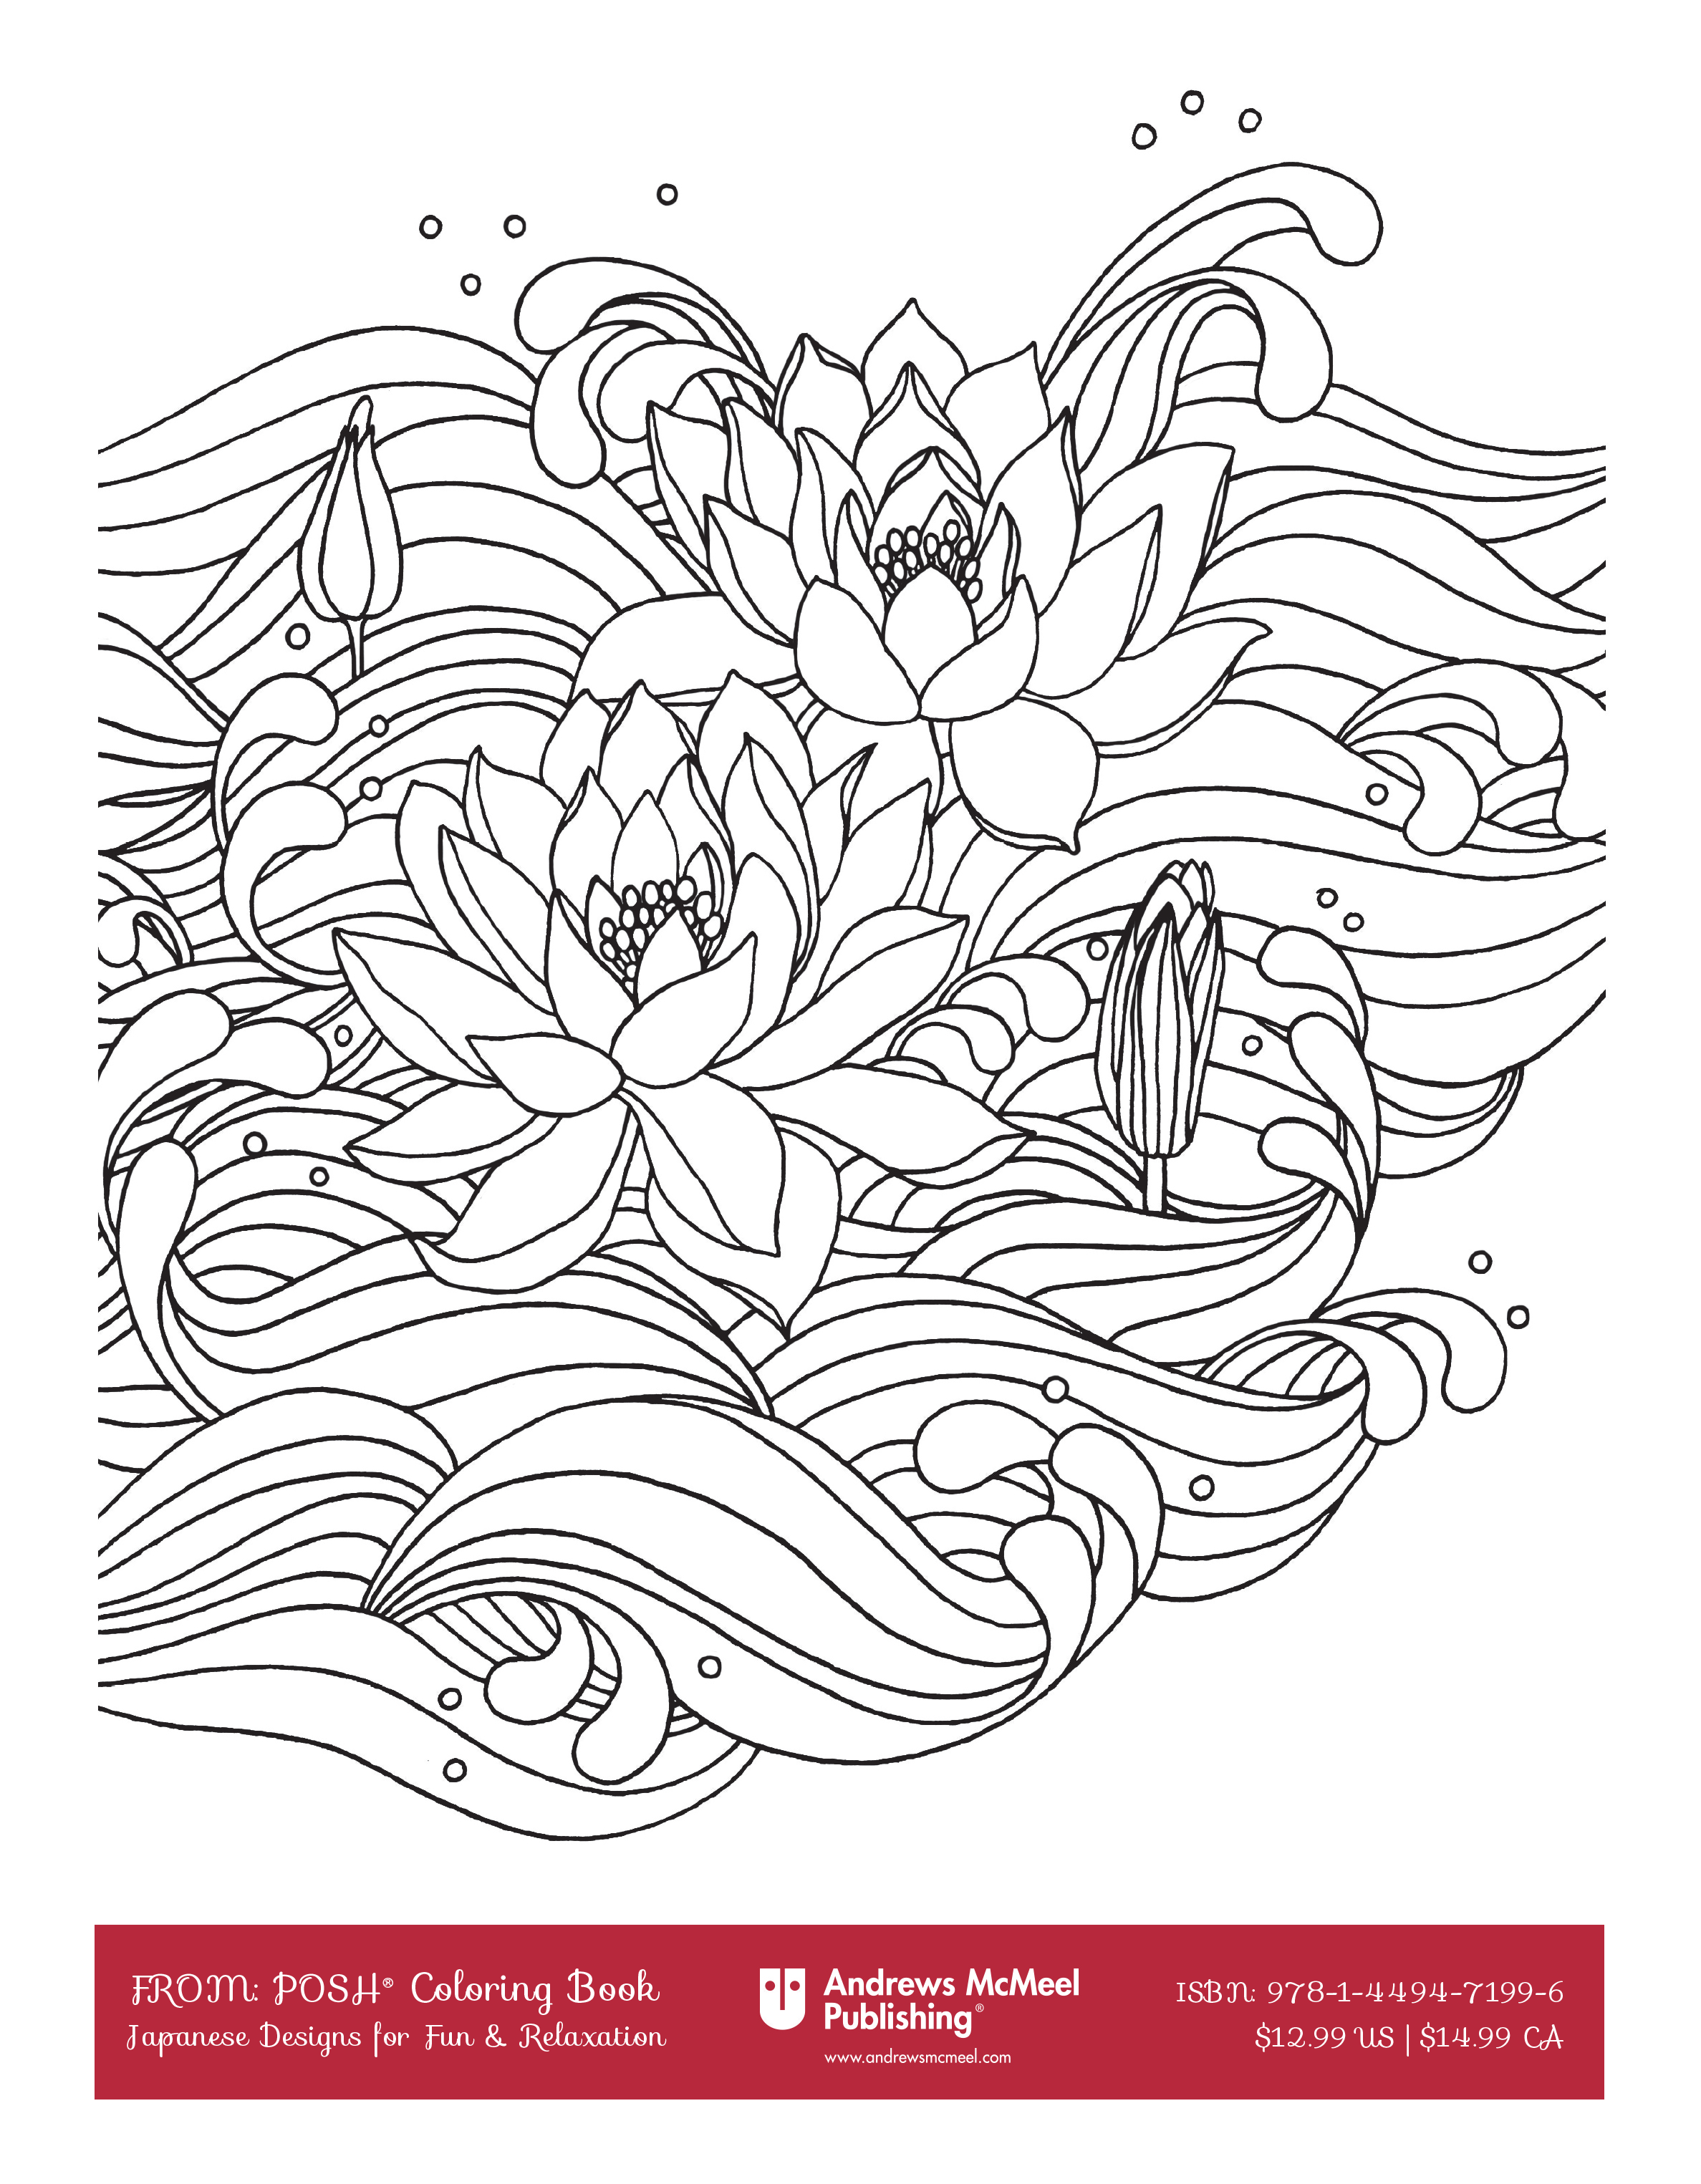 A Page From The Japanese Designs Posh Coloring Book